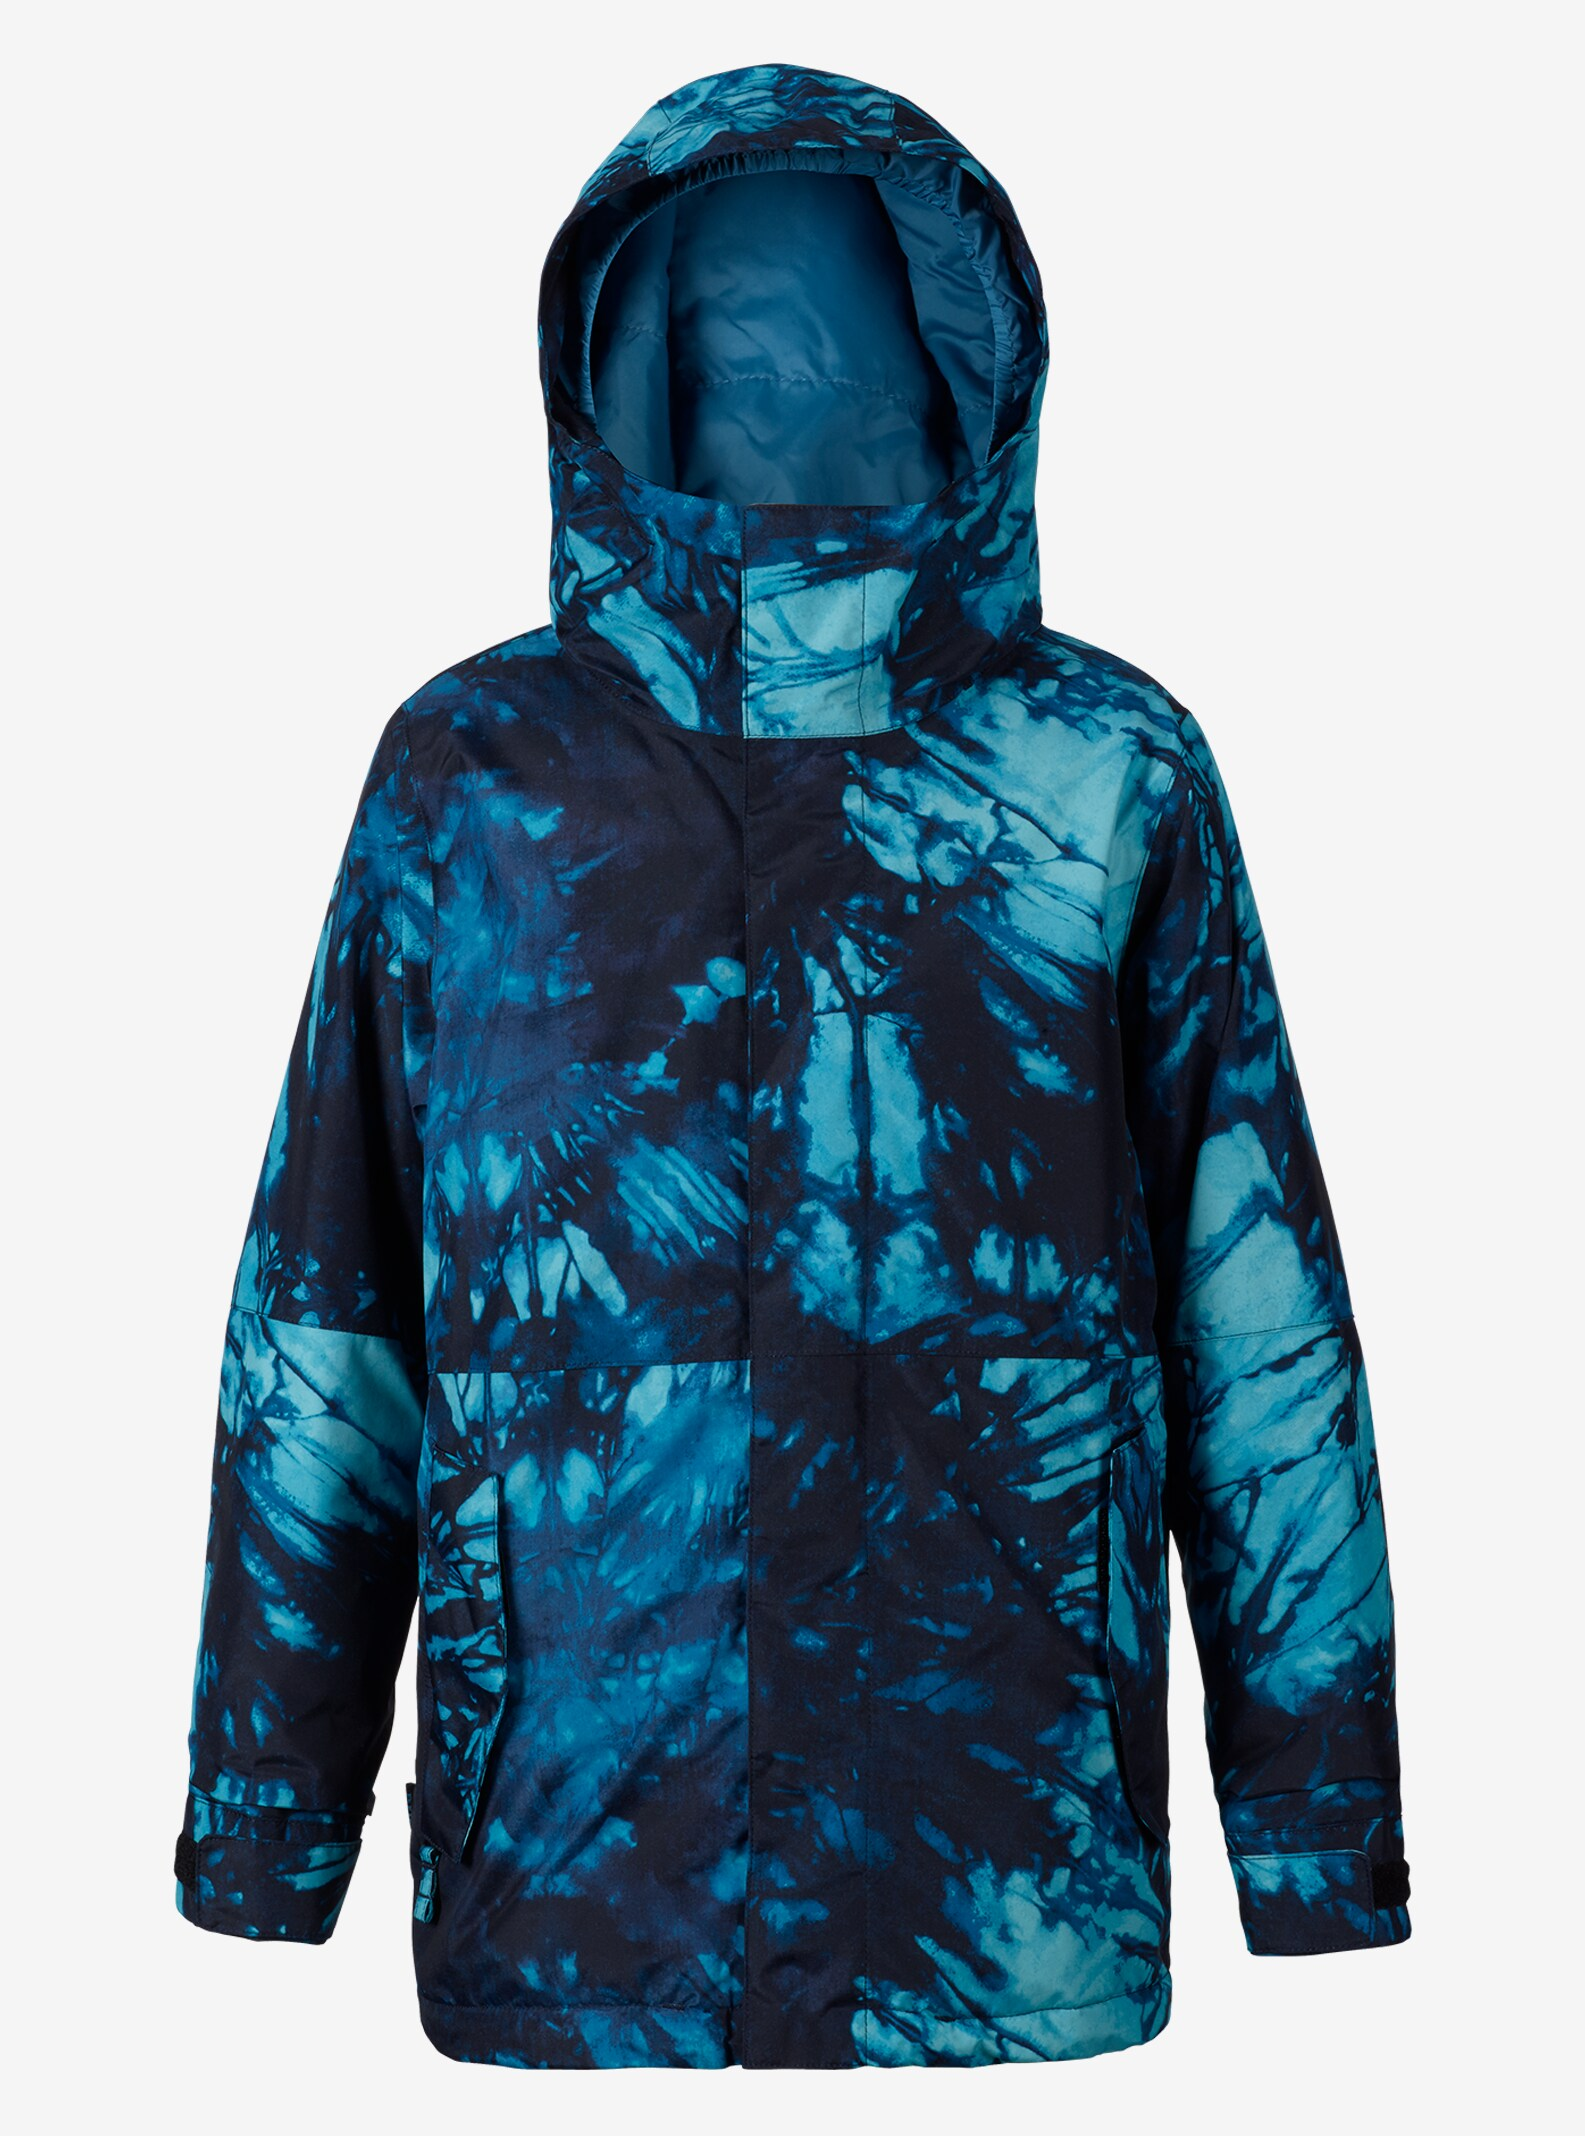 Kids' Burton GORE‑TEX® Stark Jacket shown in Tie Dye Trench